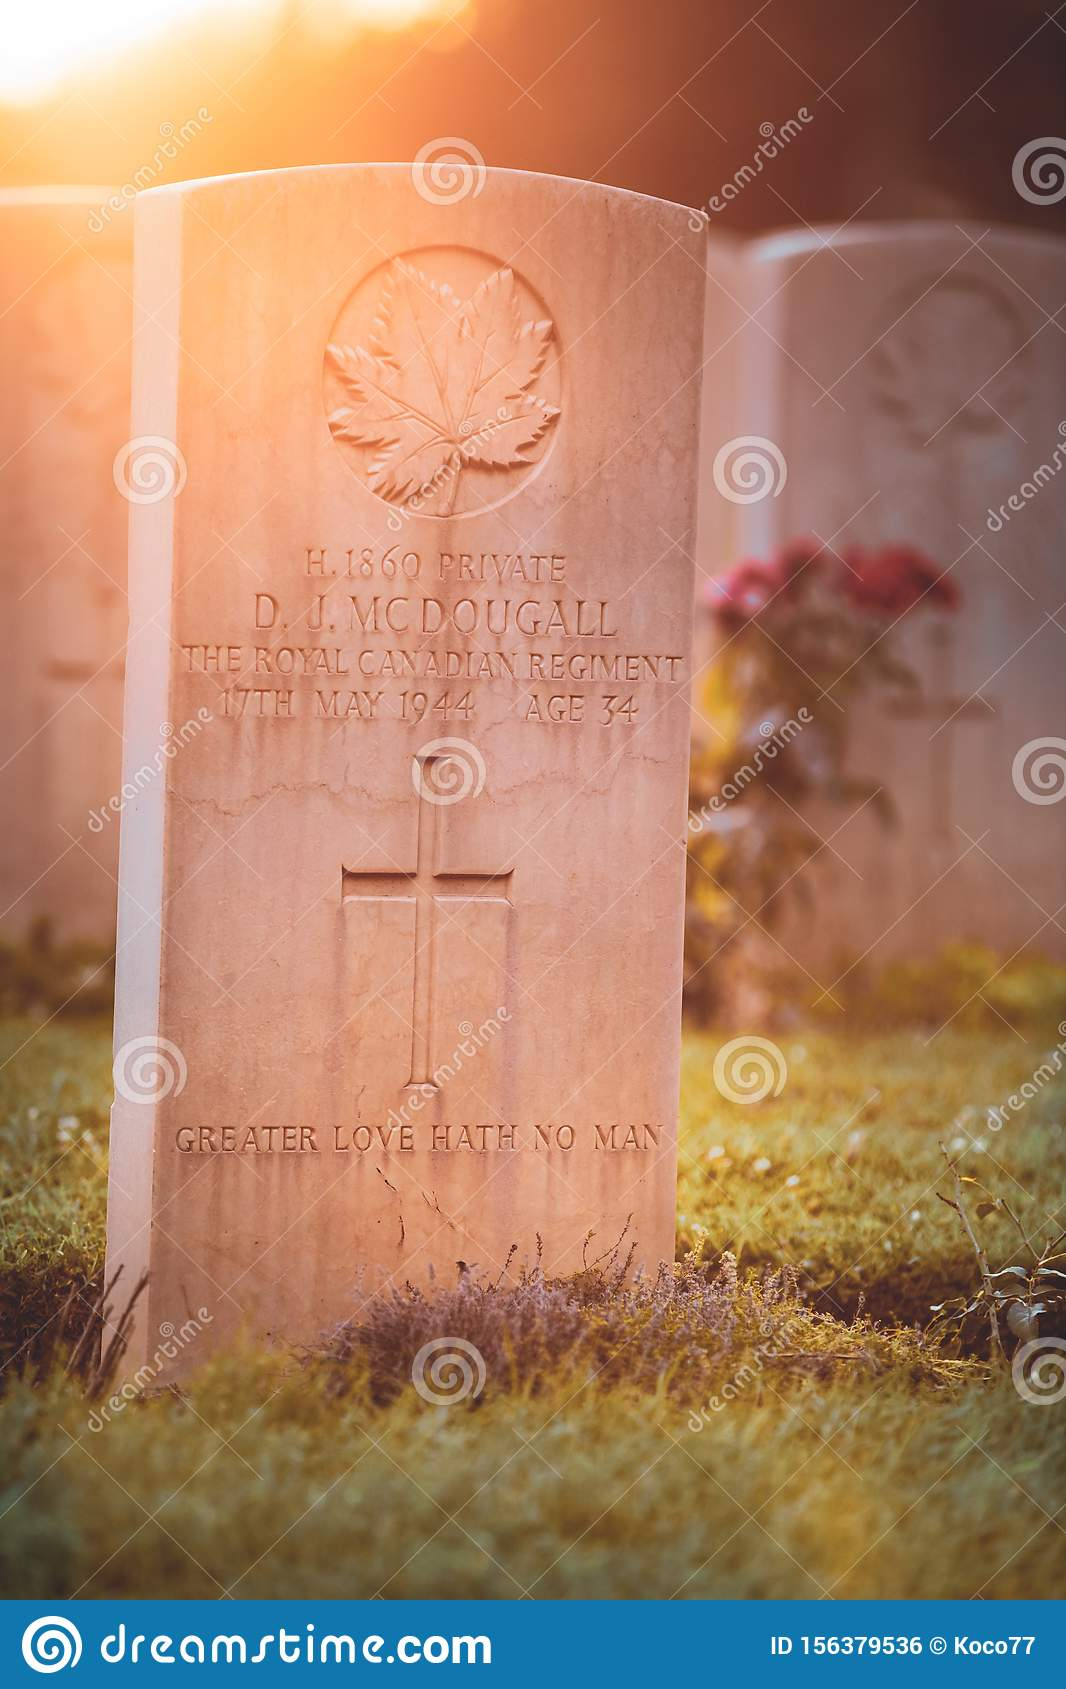 War memorial Canadian tombstone with epitaph.